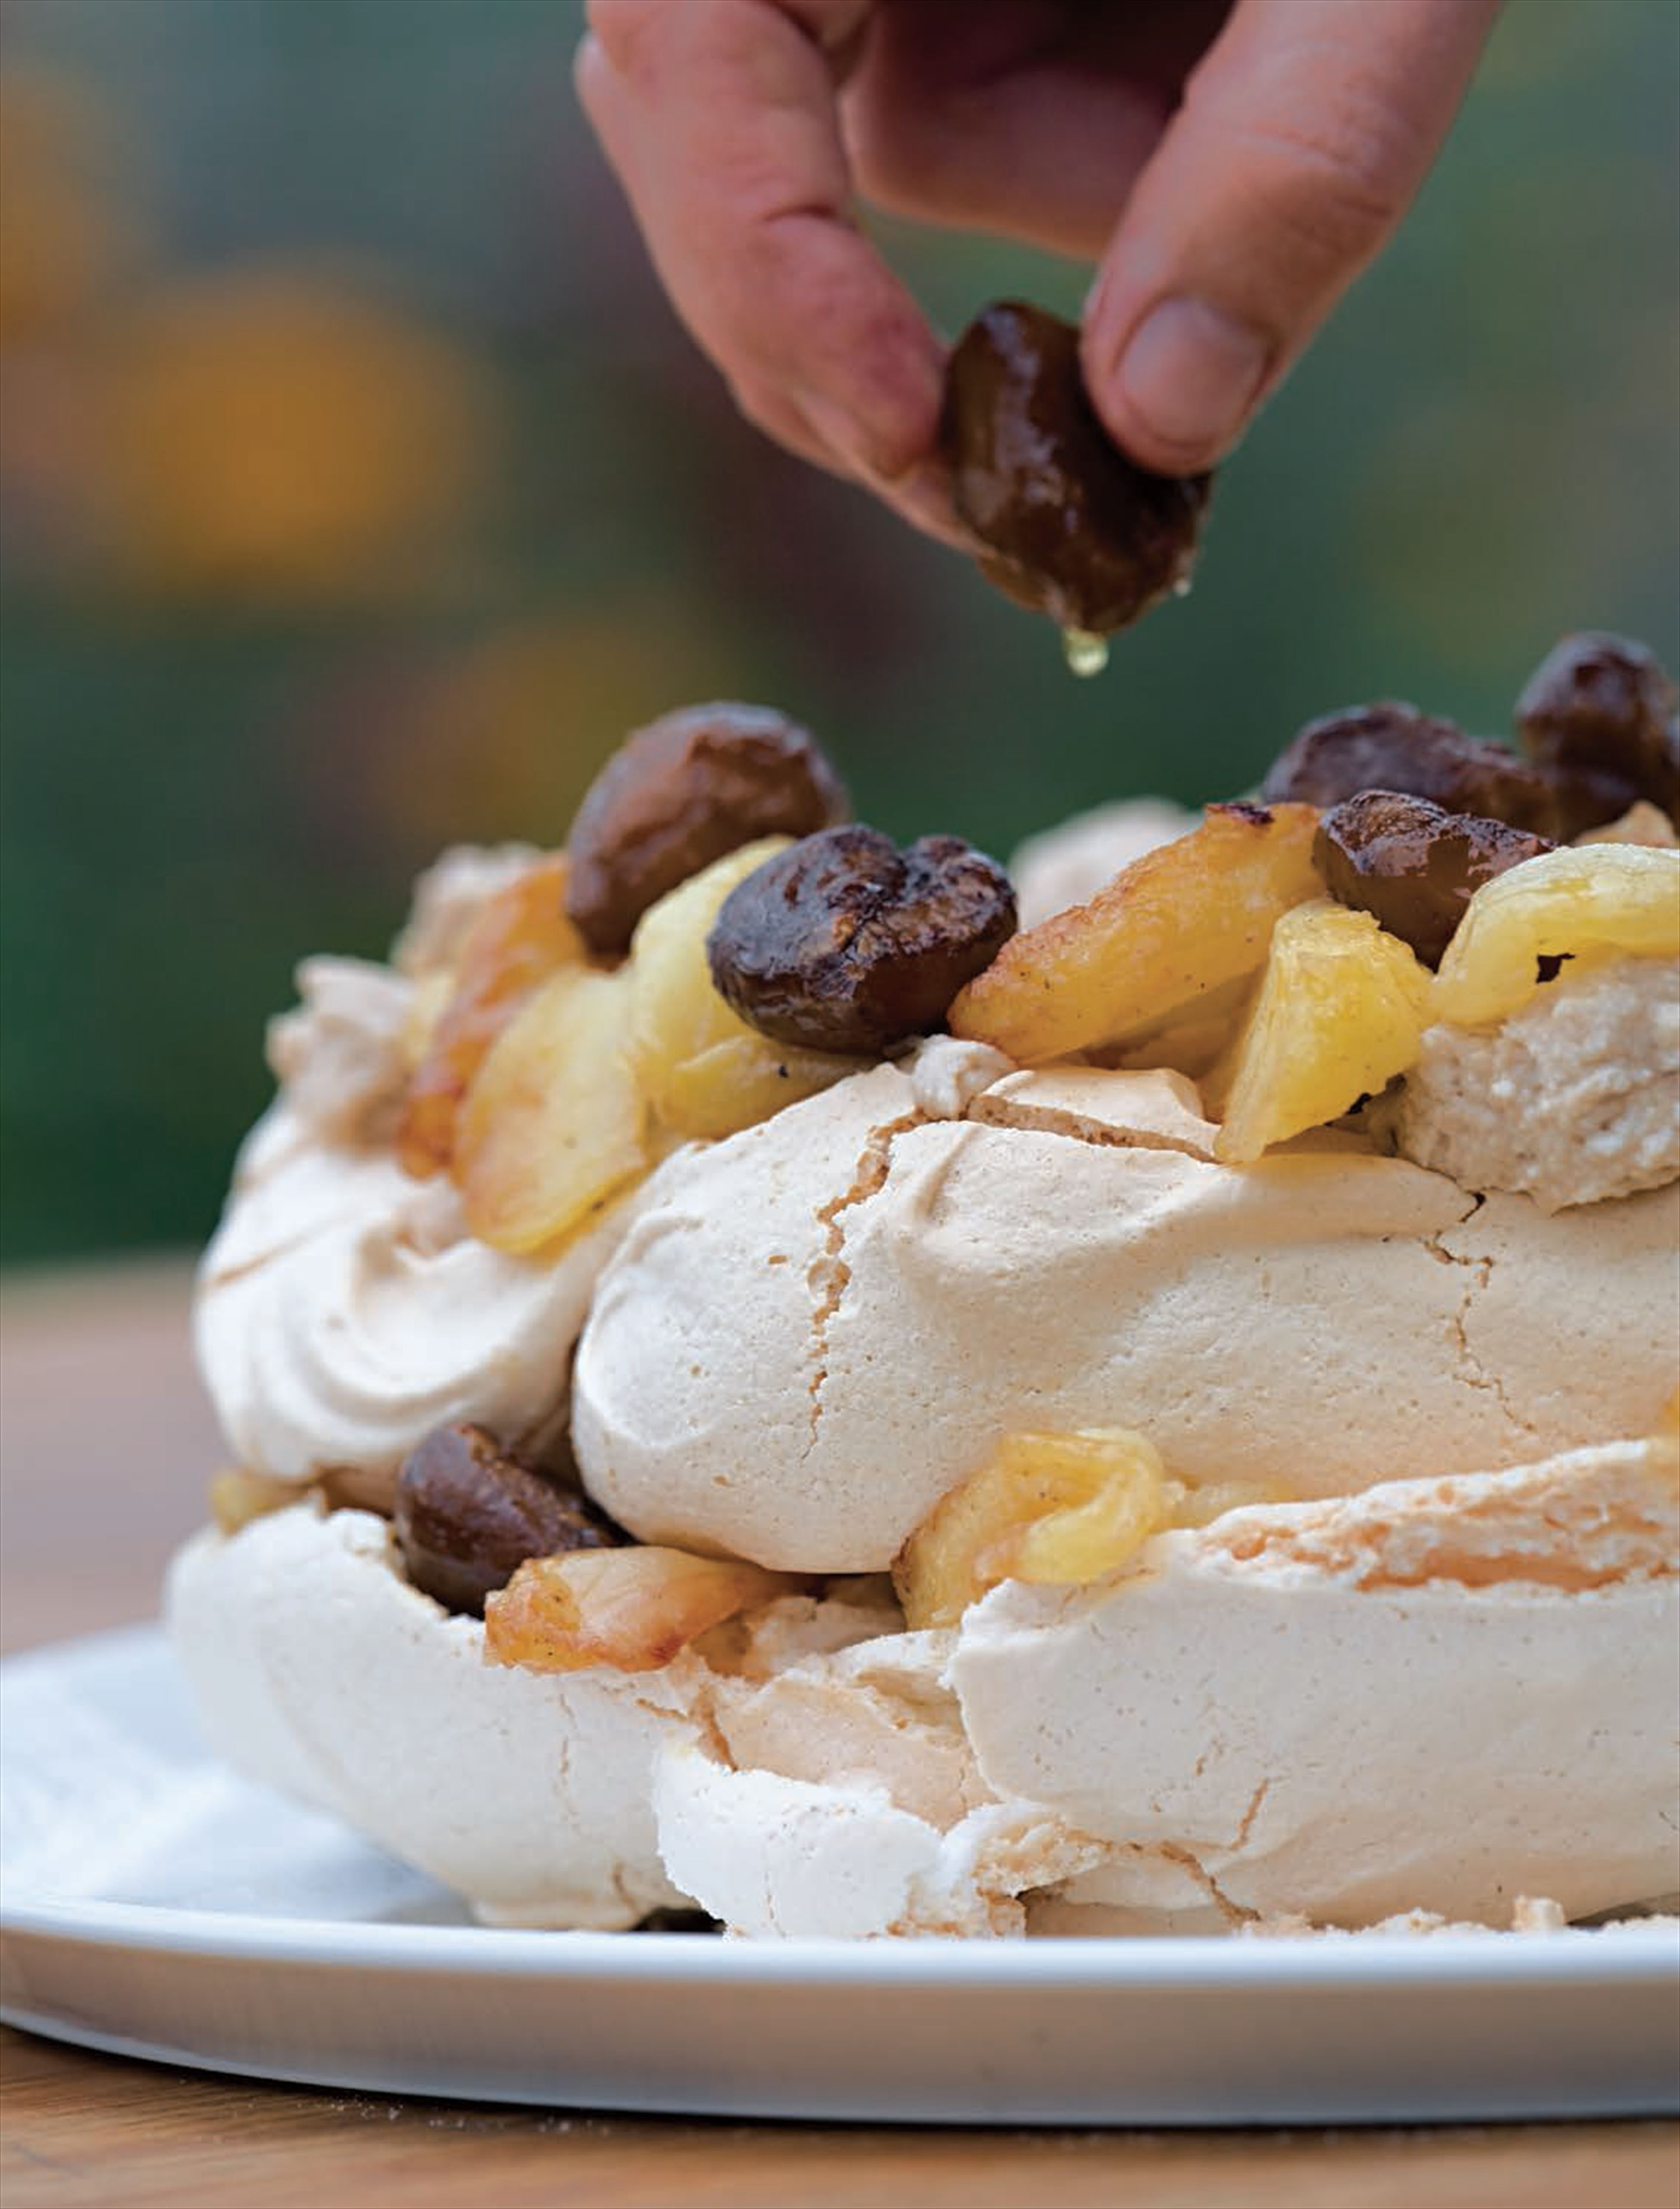 Chestnut pavlova with caramelised Bramleys